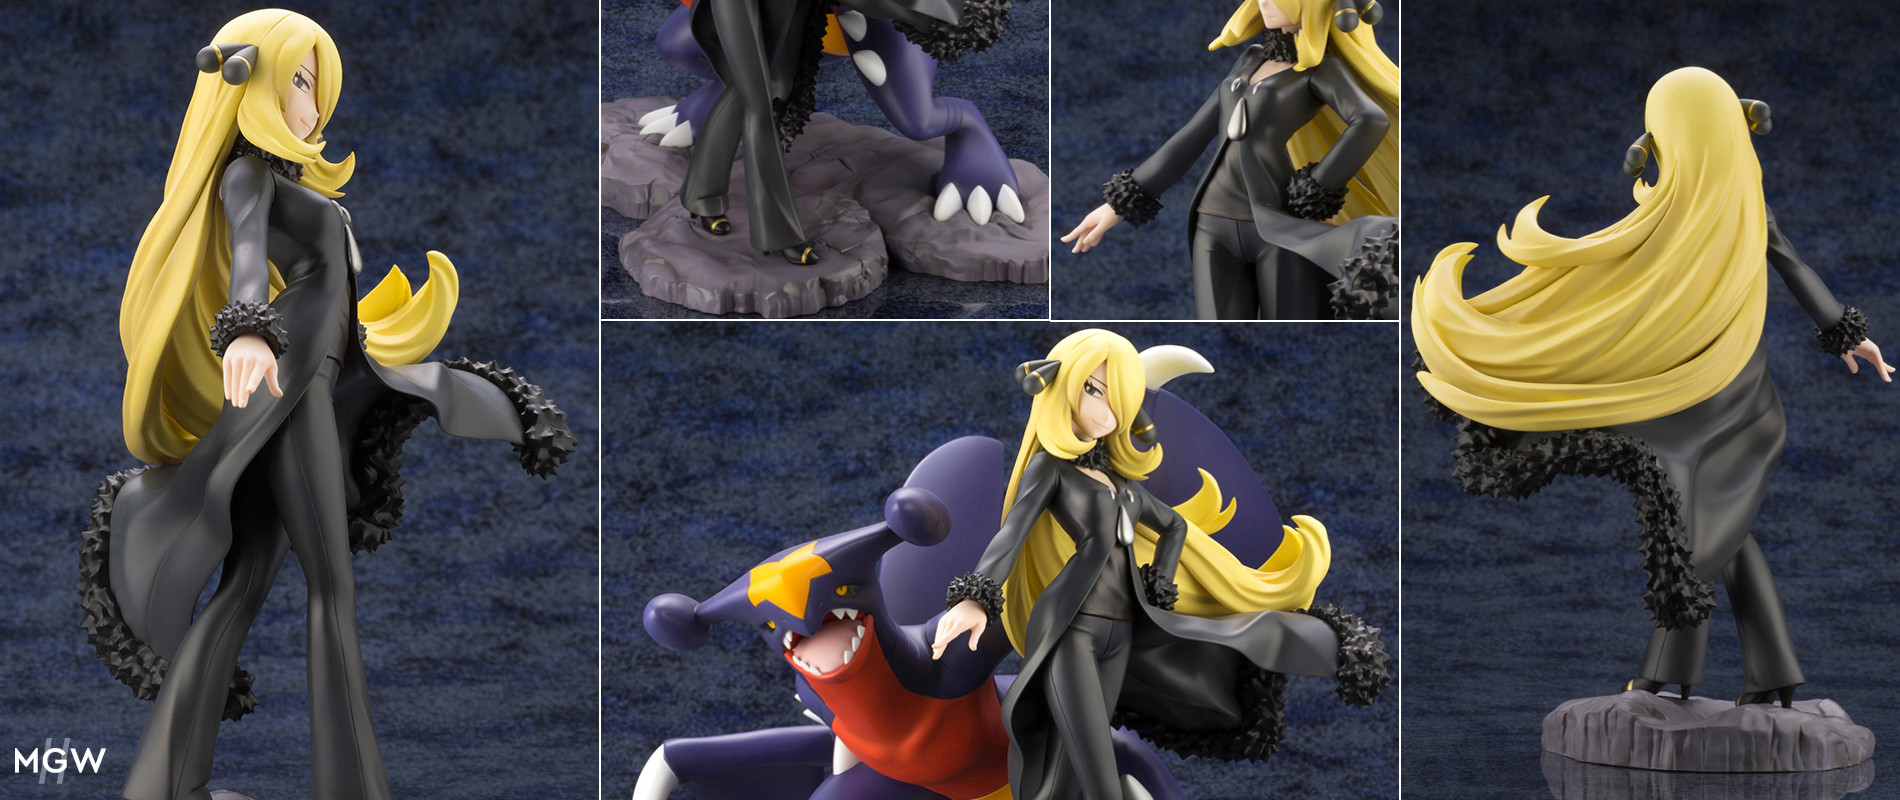 ARTFX J Cynthia with Garchomp by Kotobukiya from Pokemon MyGrailWatch Anime Figure Guide